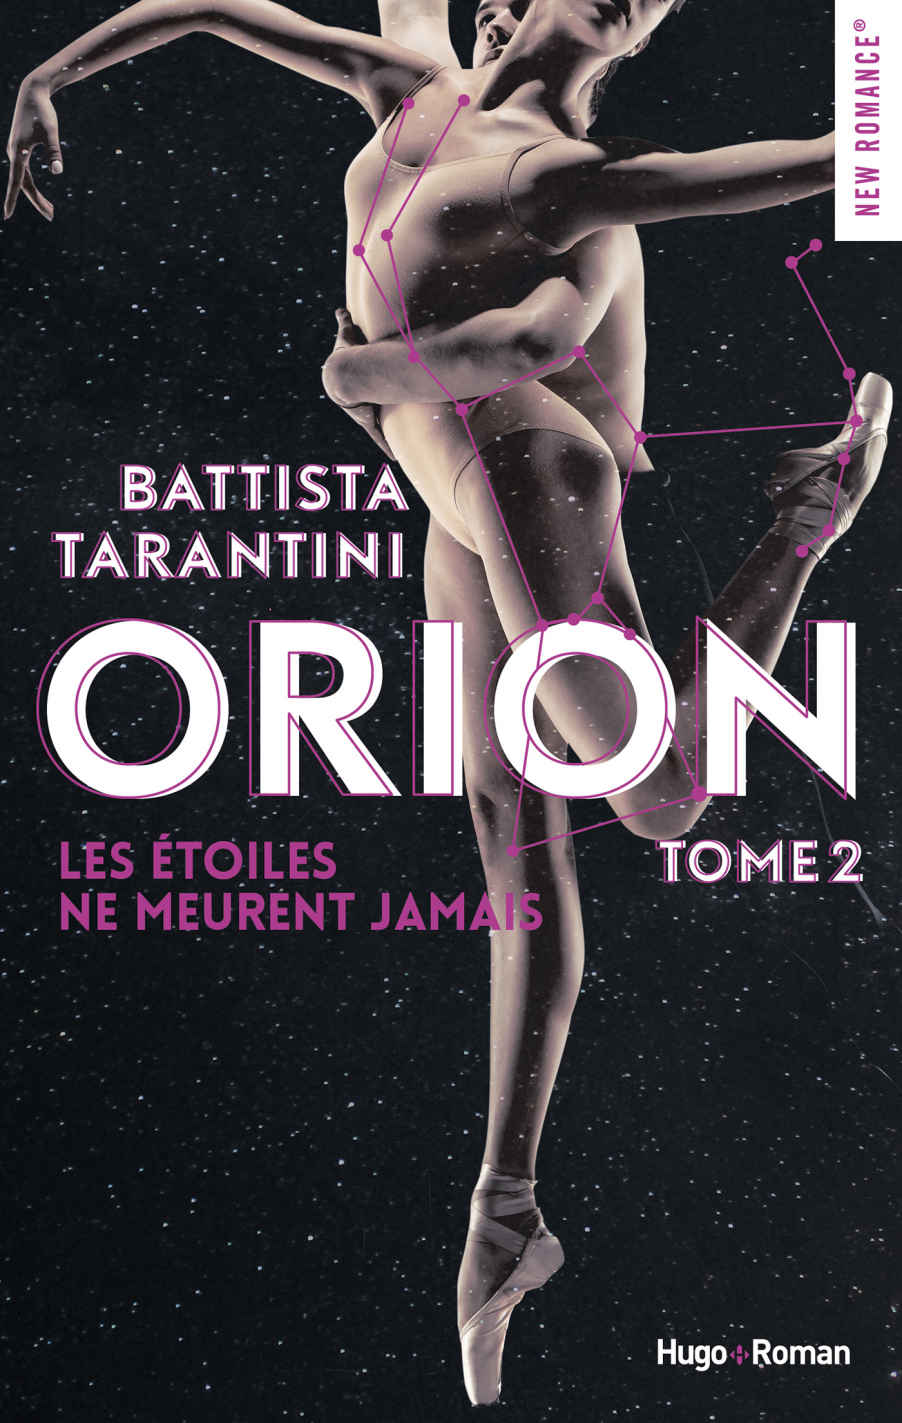 Orion, Tome 2